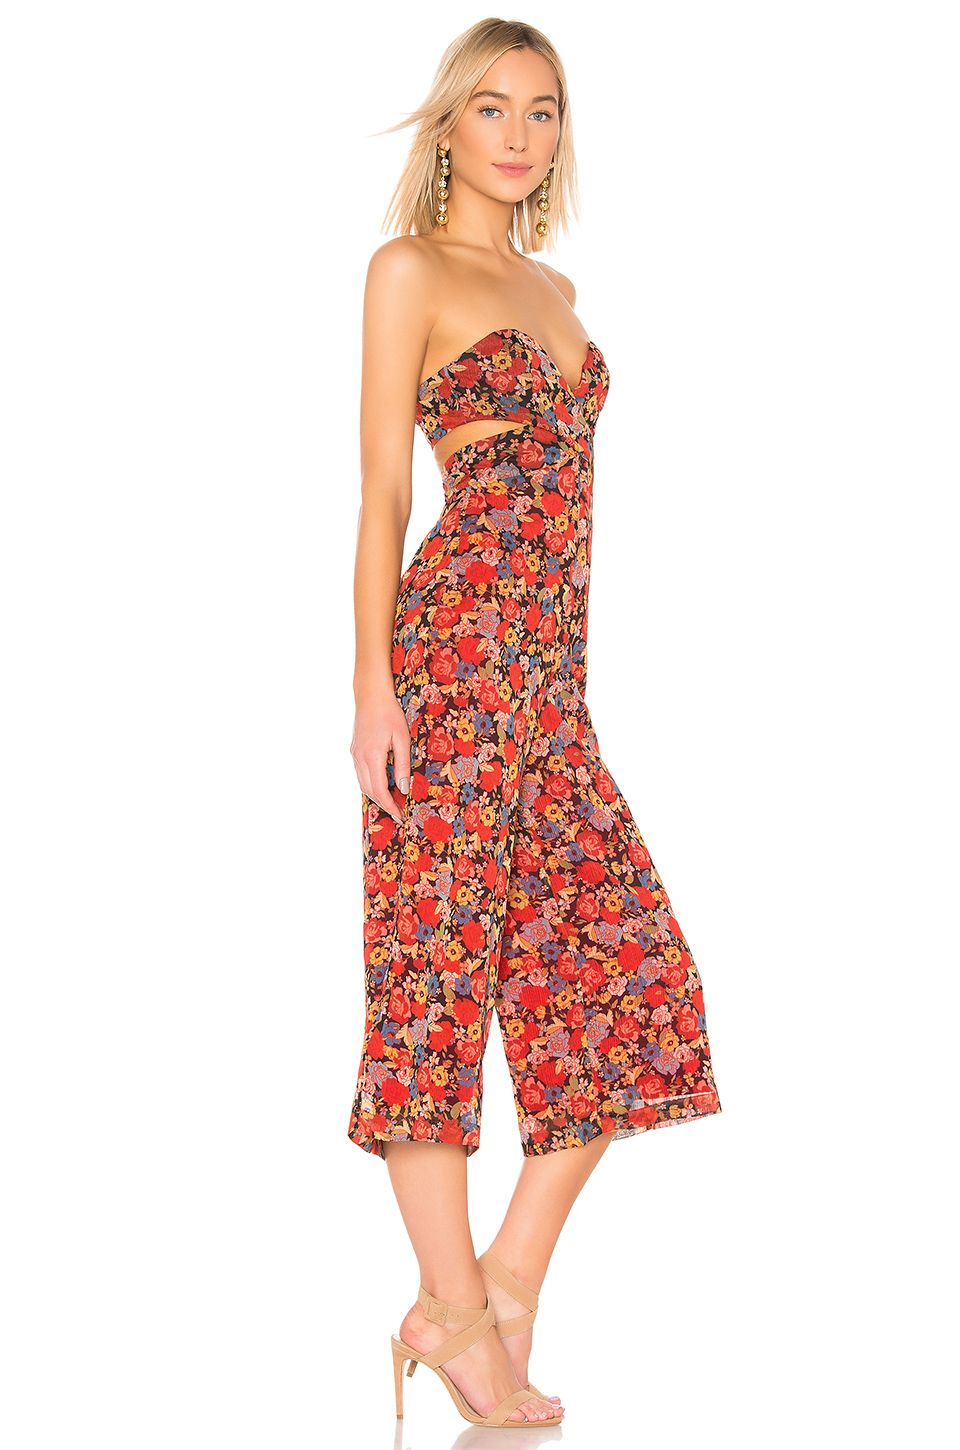 3dfaa0d97630 House of Harlow 1960 X REVOLVE Joelle Jumpsuit in Red Mixed Floral | REVOLVE  Strapless Dress